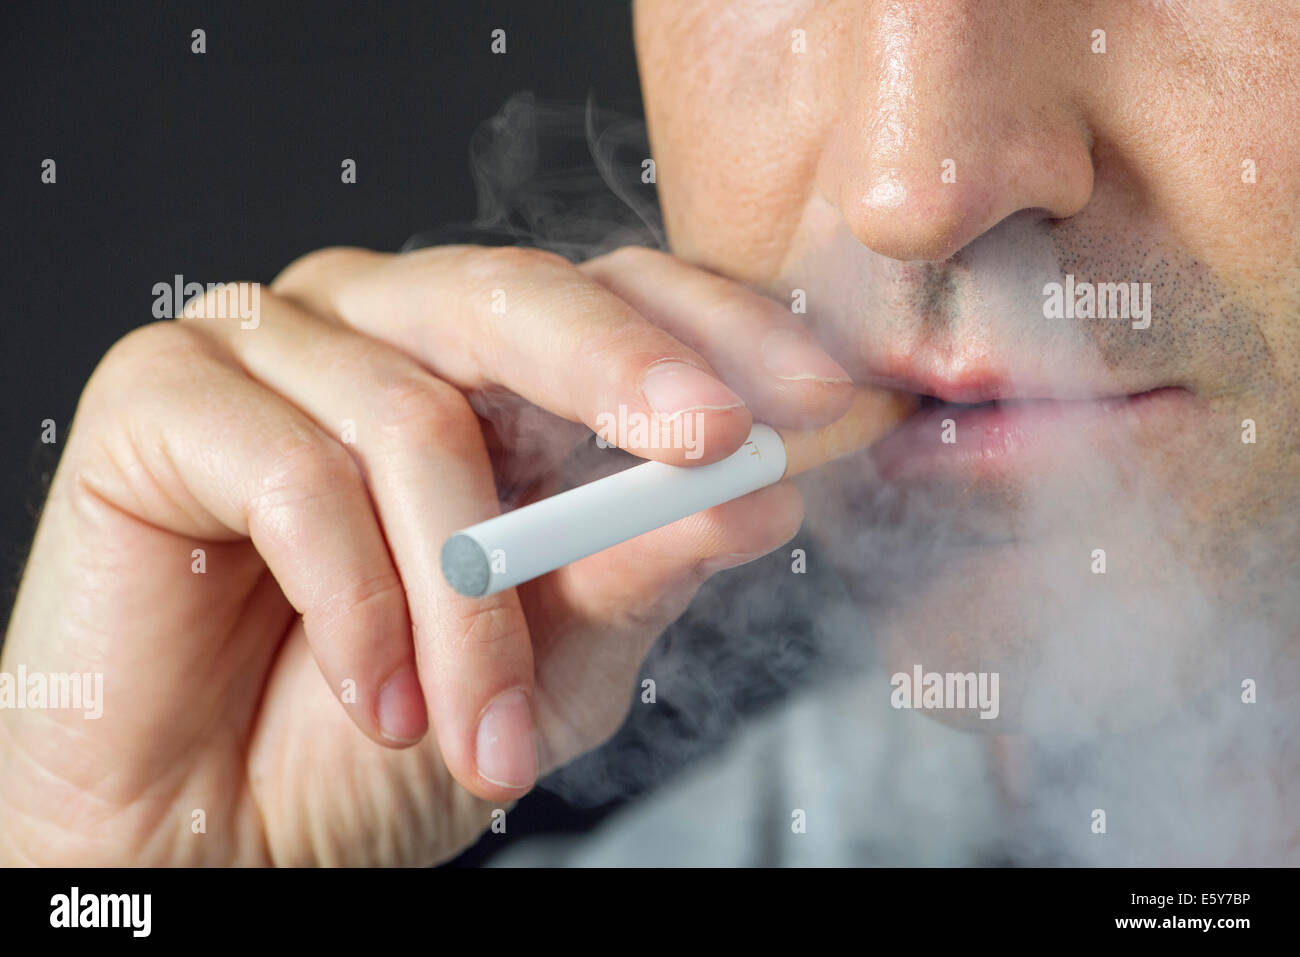 Man smoking electonic cigarette, cropped - Stock Image